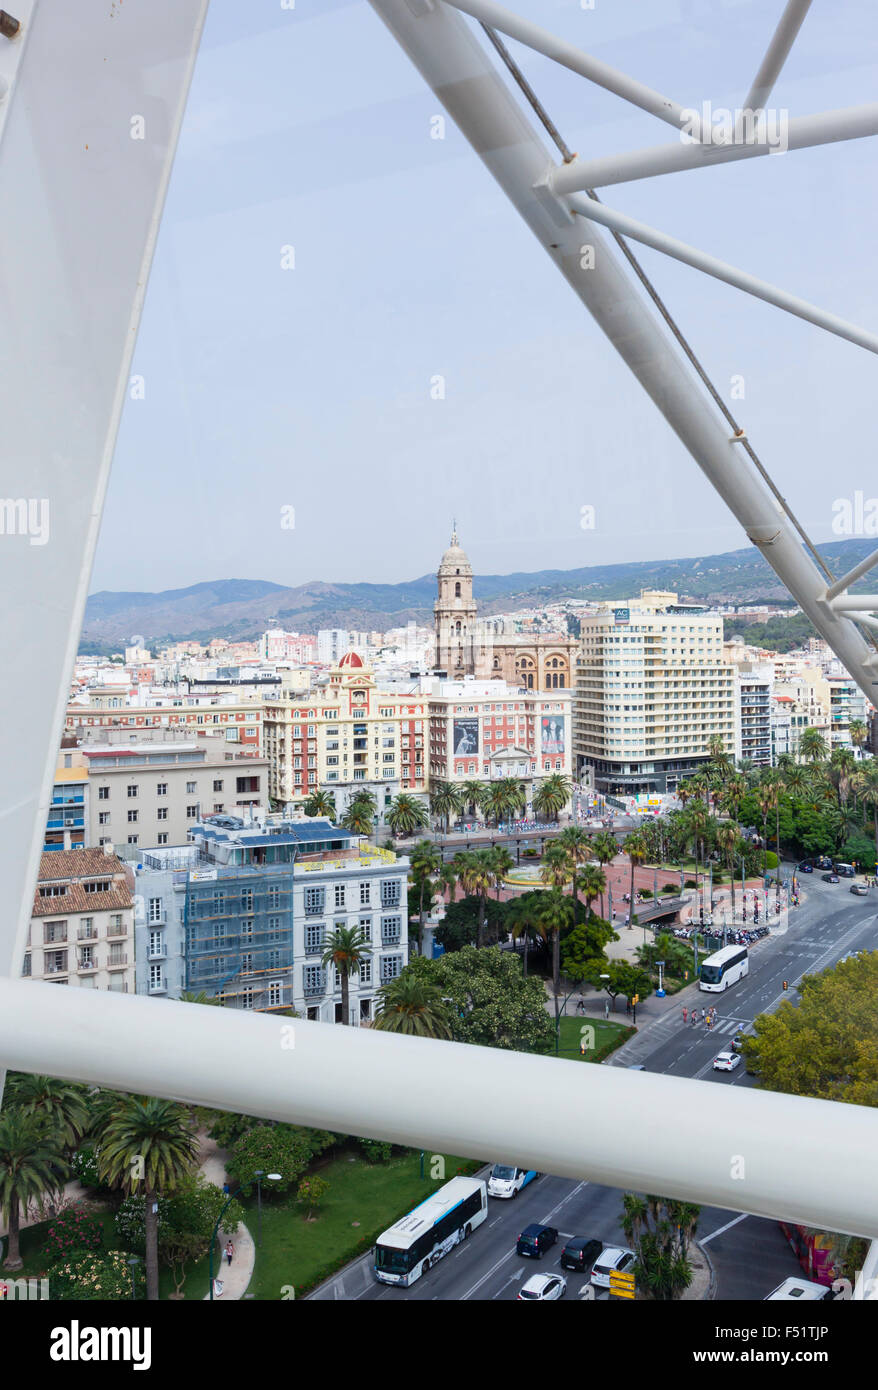 Malaga, Costa del Sol, Malaga Province, Andalusia, southern Spain.  Aerial view of city centre. - Stock Image